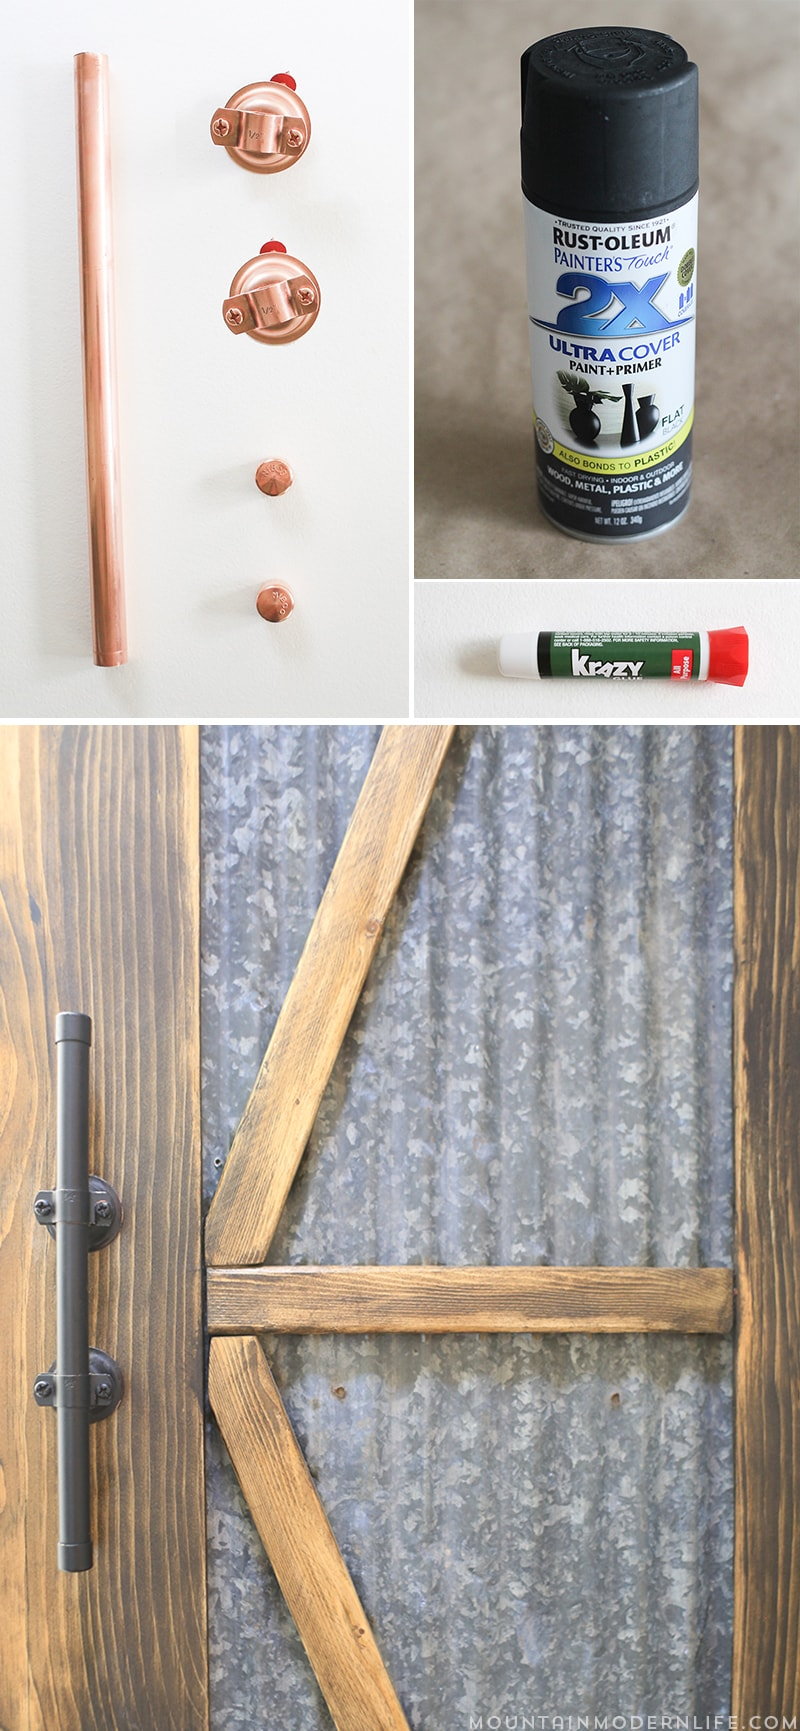 Looking for furniture hardware you can easily create and customize on a budget? Check out these Rustic Modern Cabinet Pulls! MountainModernLife.com